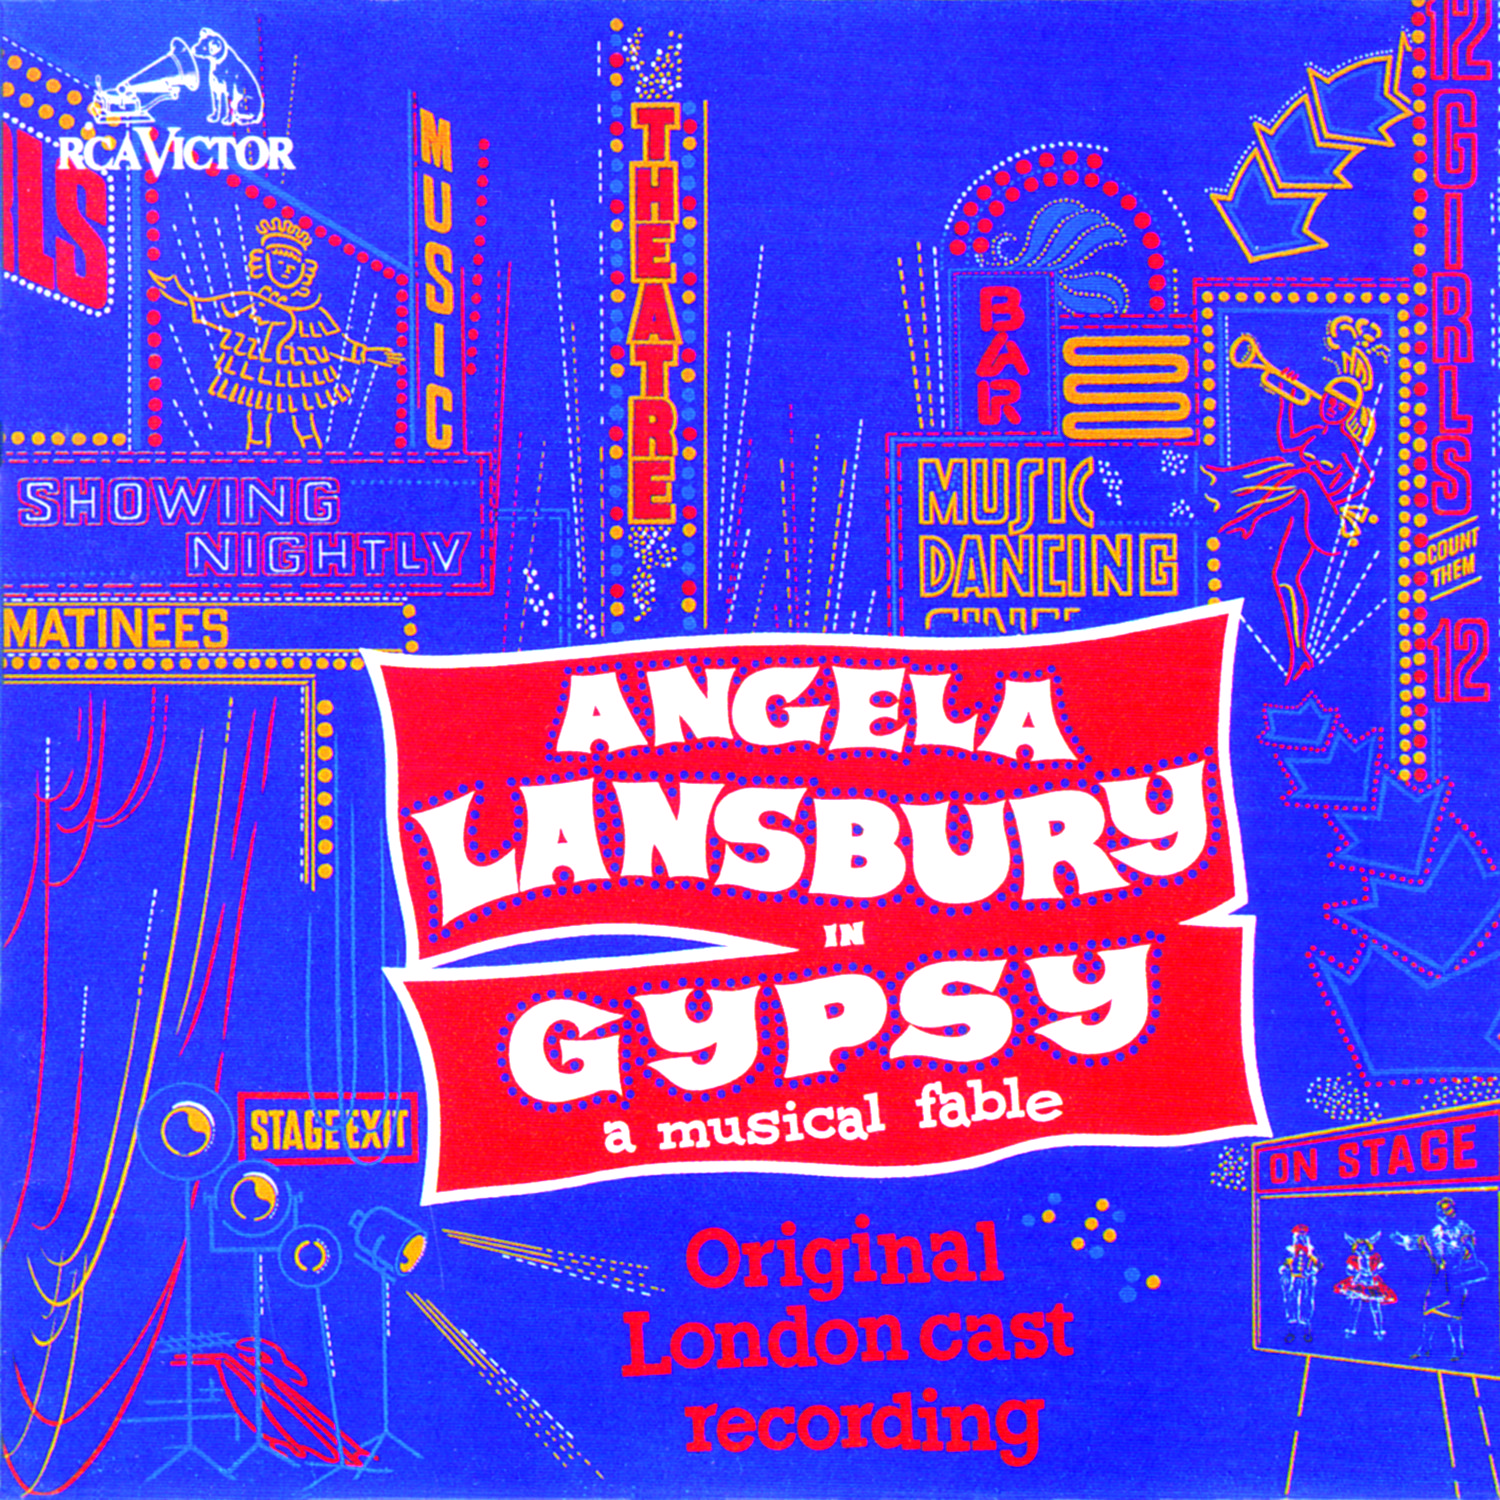 Gypsy – Original London Cast 1973